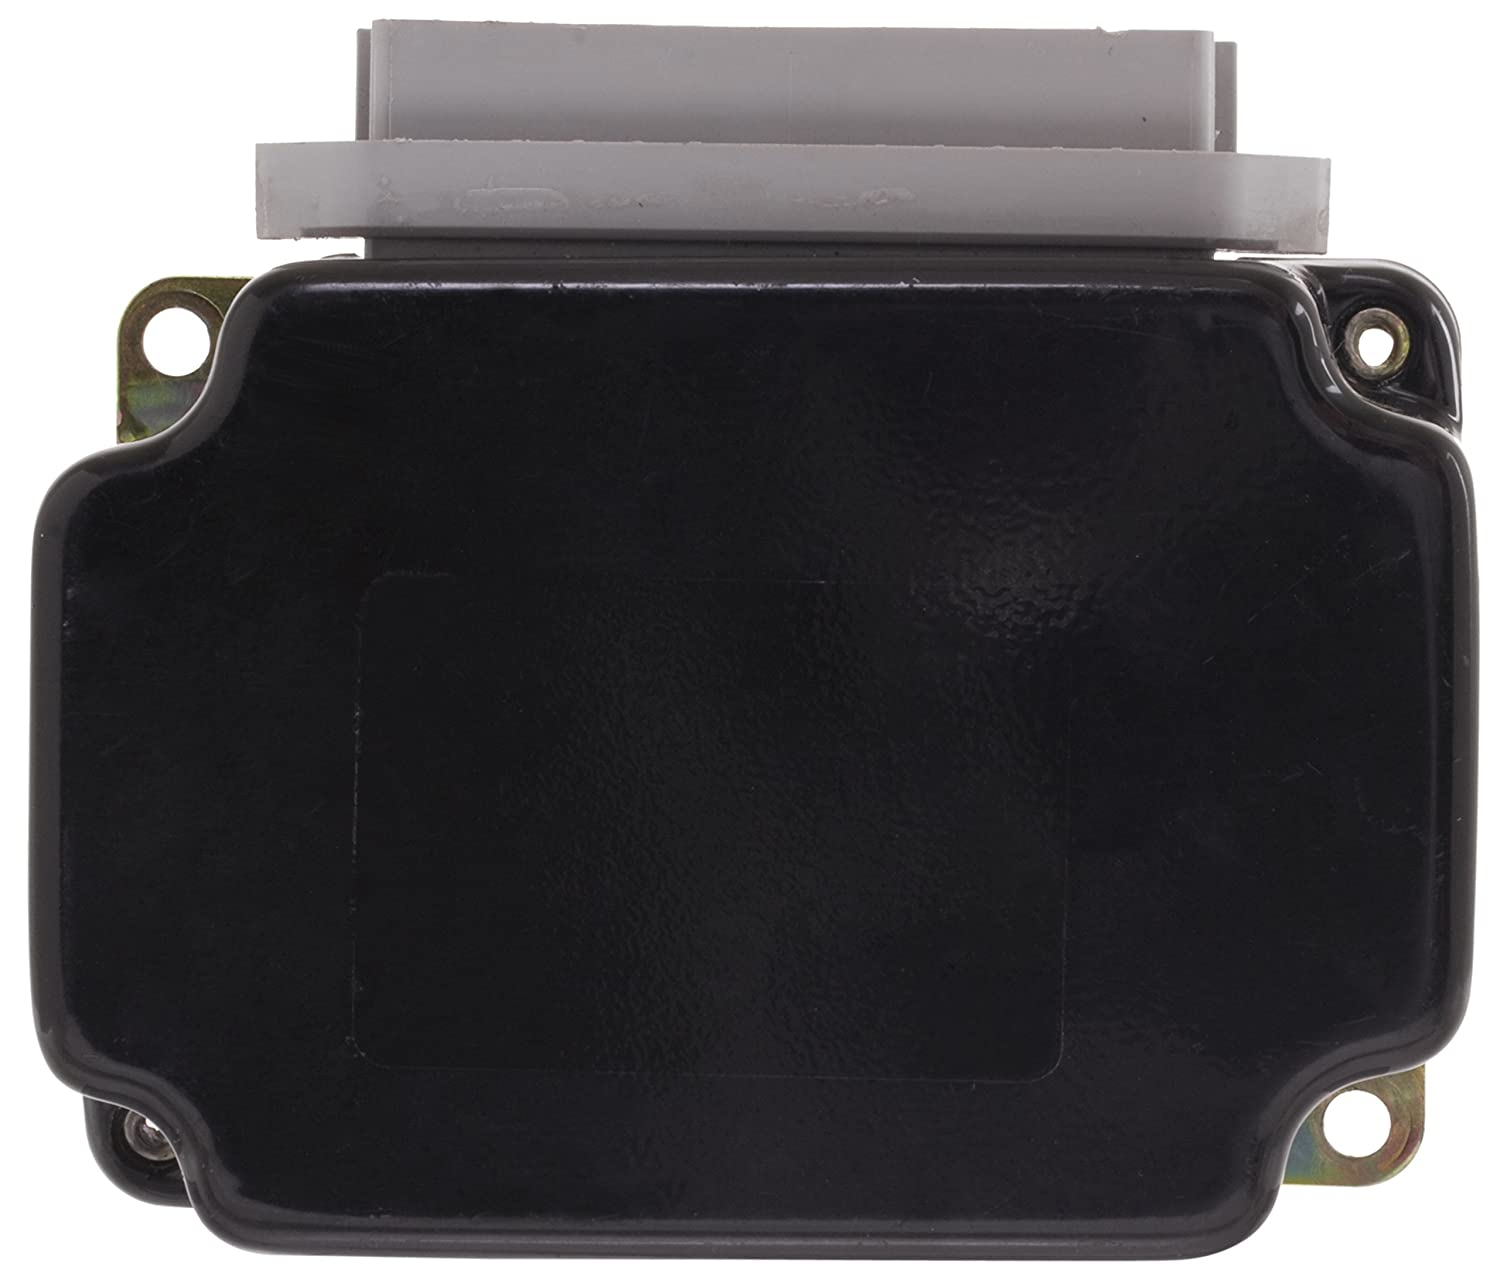 Wells 20253 Powertrain Control Module Relay Automotive The Previous Wiring Diagram To See Circuits Related Ccrm